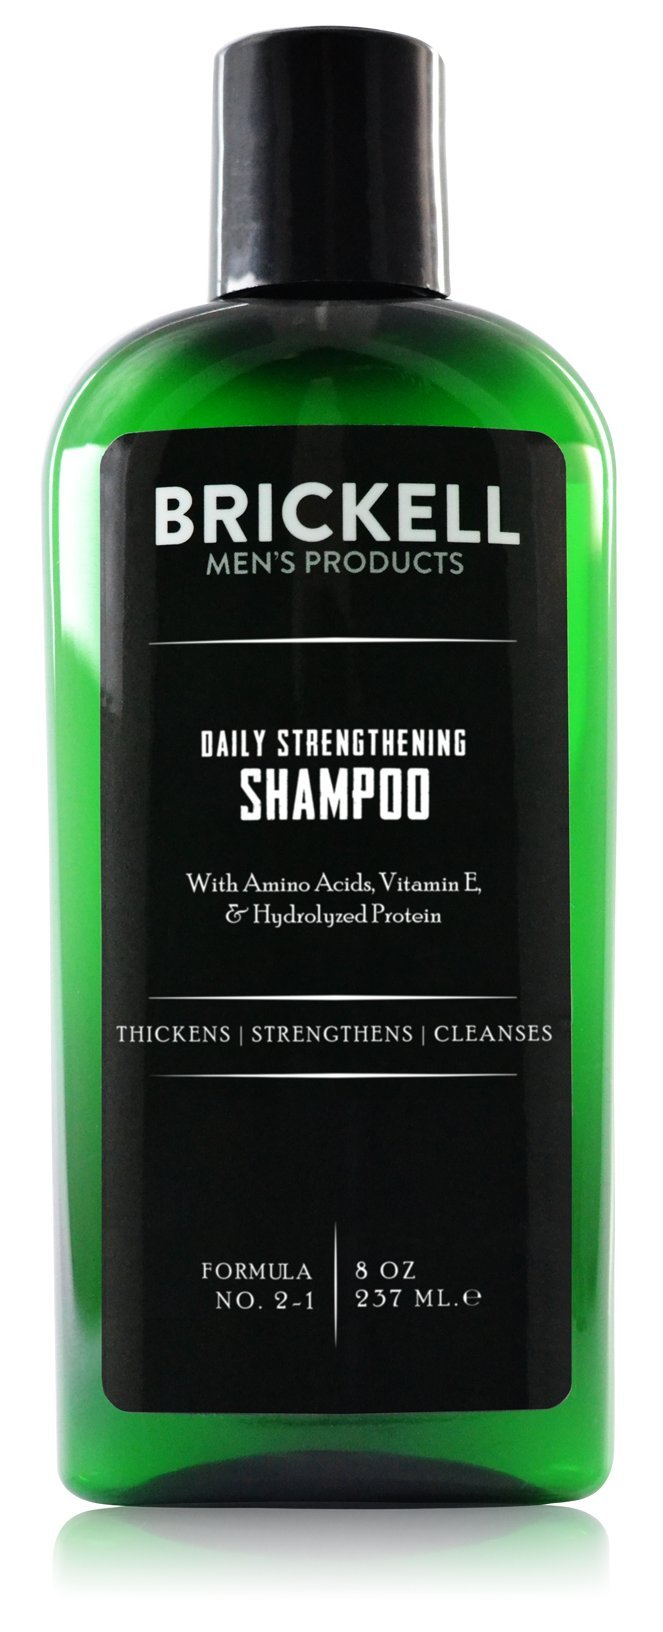 Brickell Men's Daily Strengthening Shampoo for Men - Natural & Organic Featuring Mint & Tea Tree Oil